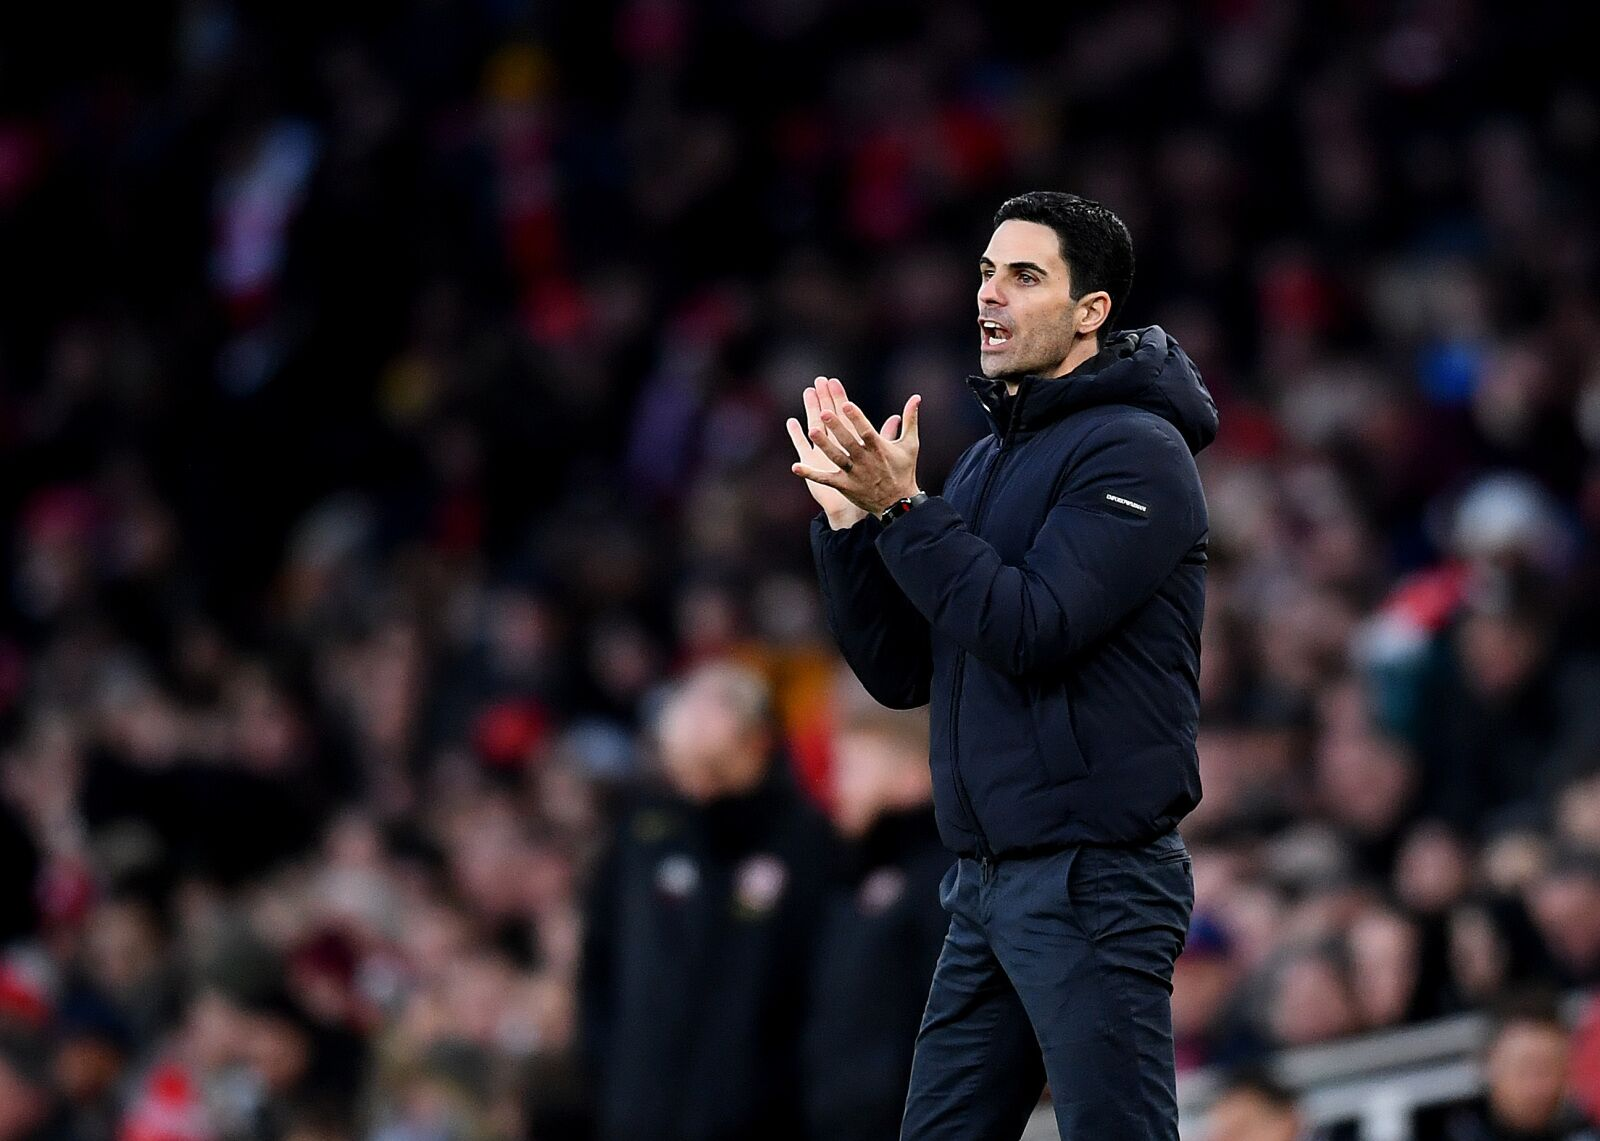 Arsenal and Mikel Arteta: Results are temporary, progress is permanent